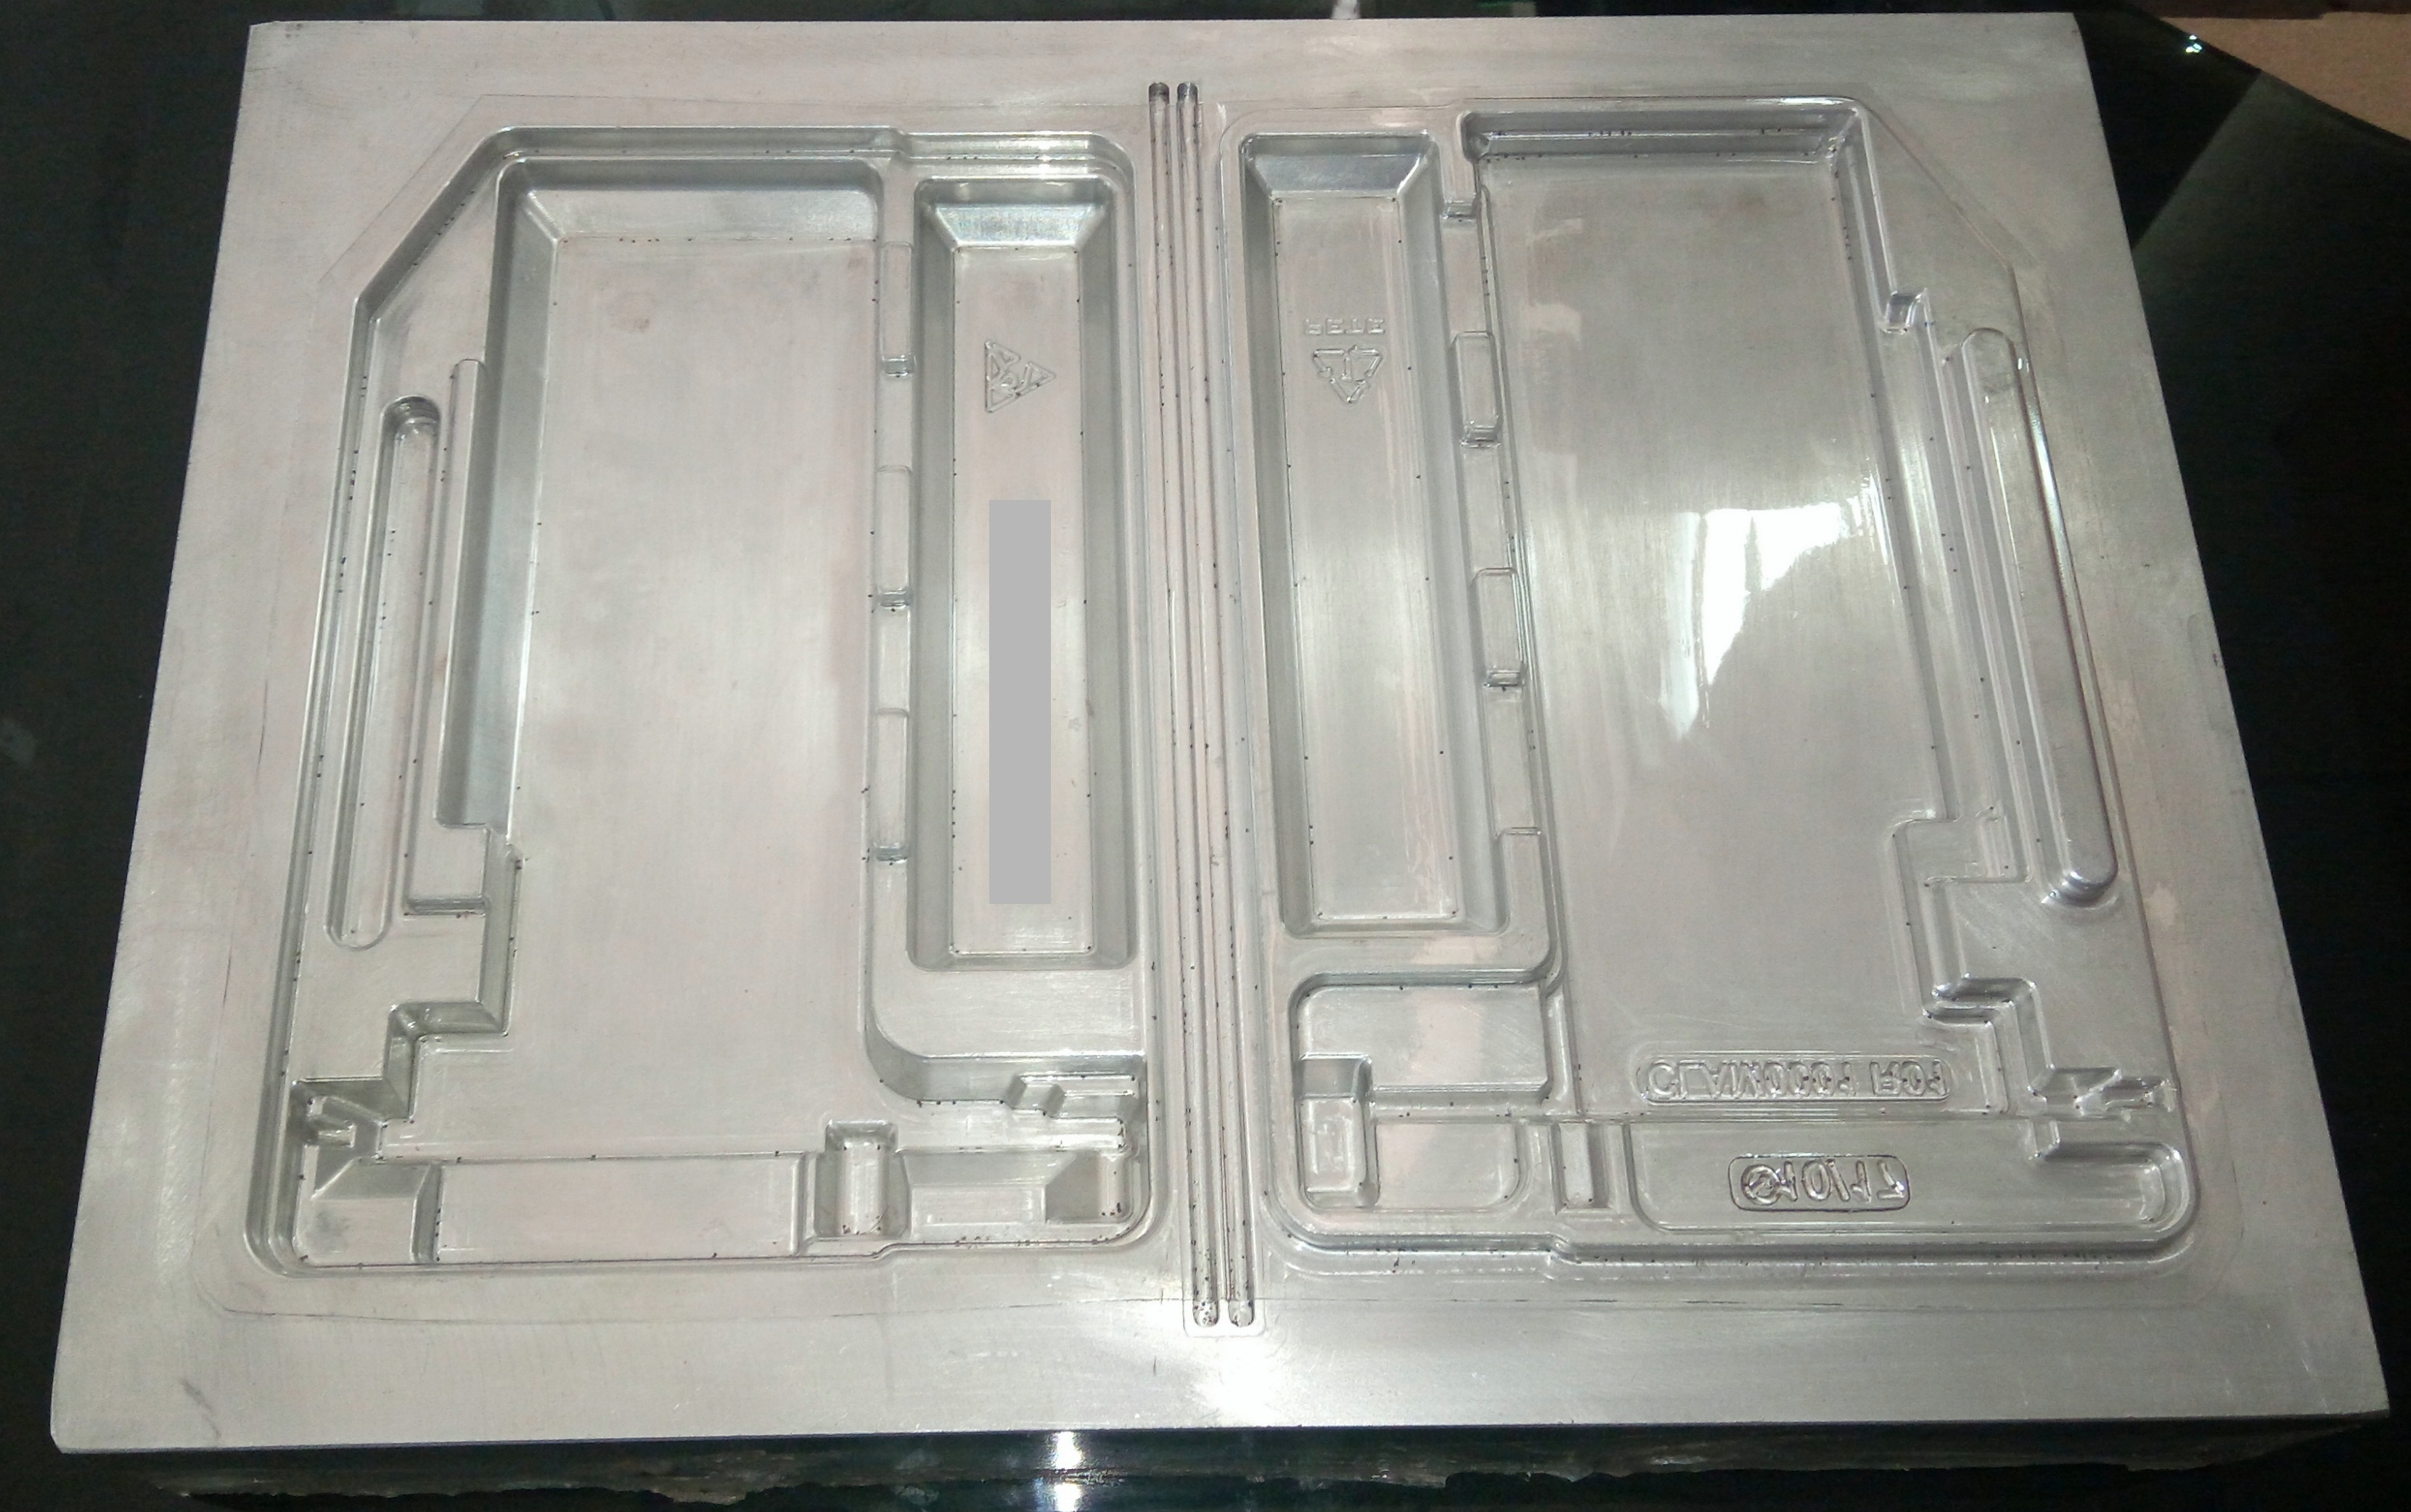 Computer Hardware Packing Mould/Mold  This computer hardware packing mould/ mold is made of high quality and smooth surface finish. They are manufactured with full dedication in a very mean time. This type of packages for computer hardware and any industrial trays can be designed and developed (manufactured) in high precision level by Ability Engineering Private Limited (AEPL).